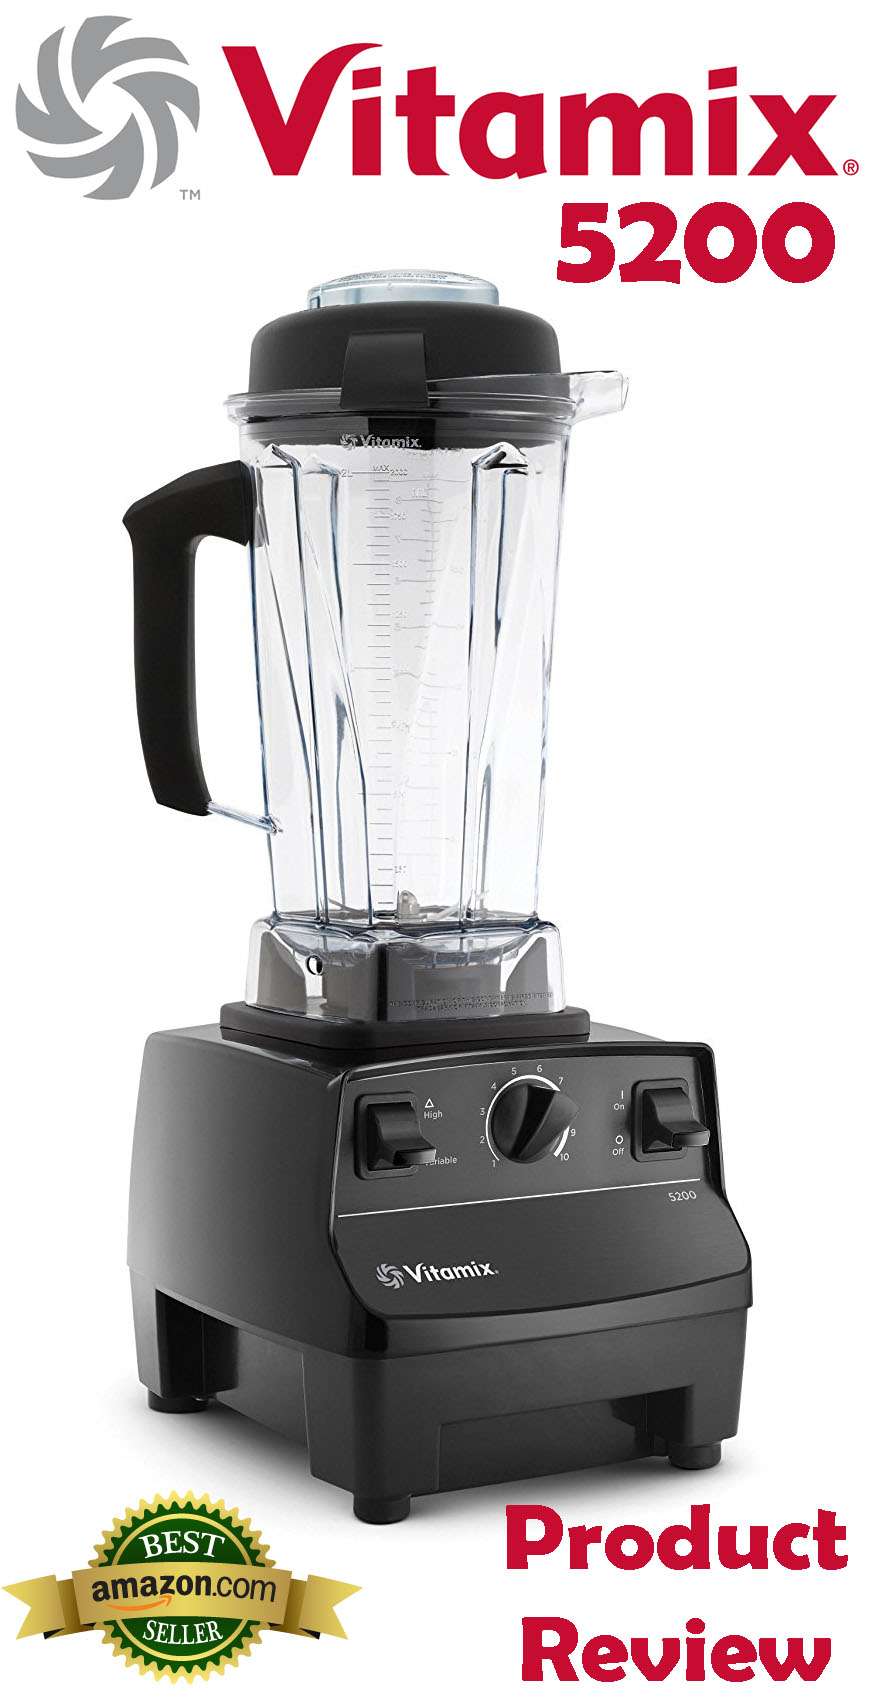 Vitamix 5200 Series Blender Product Review